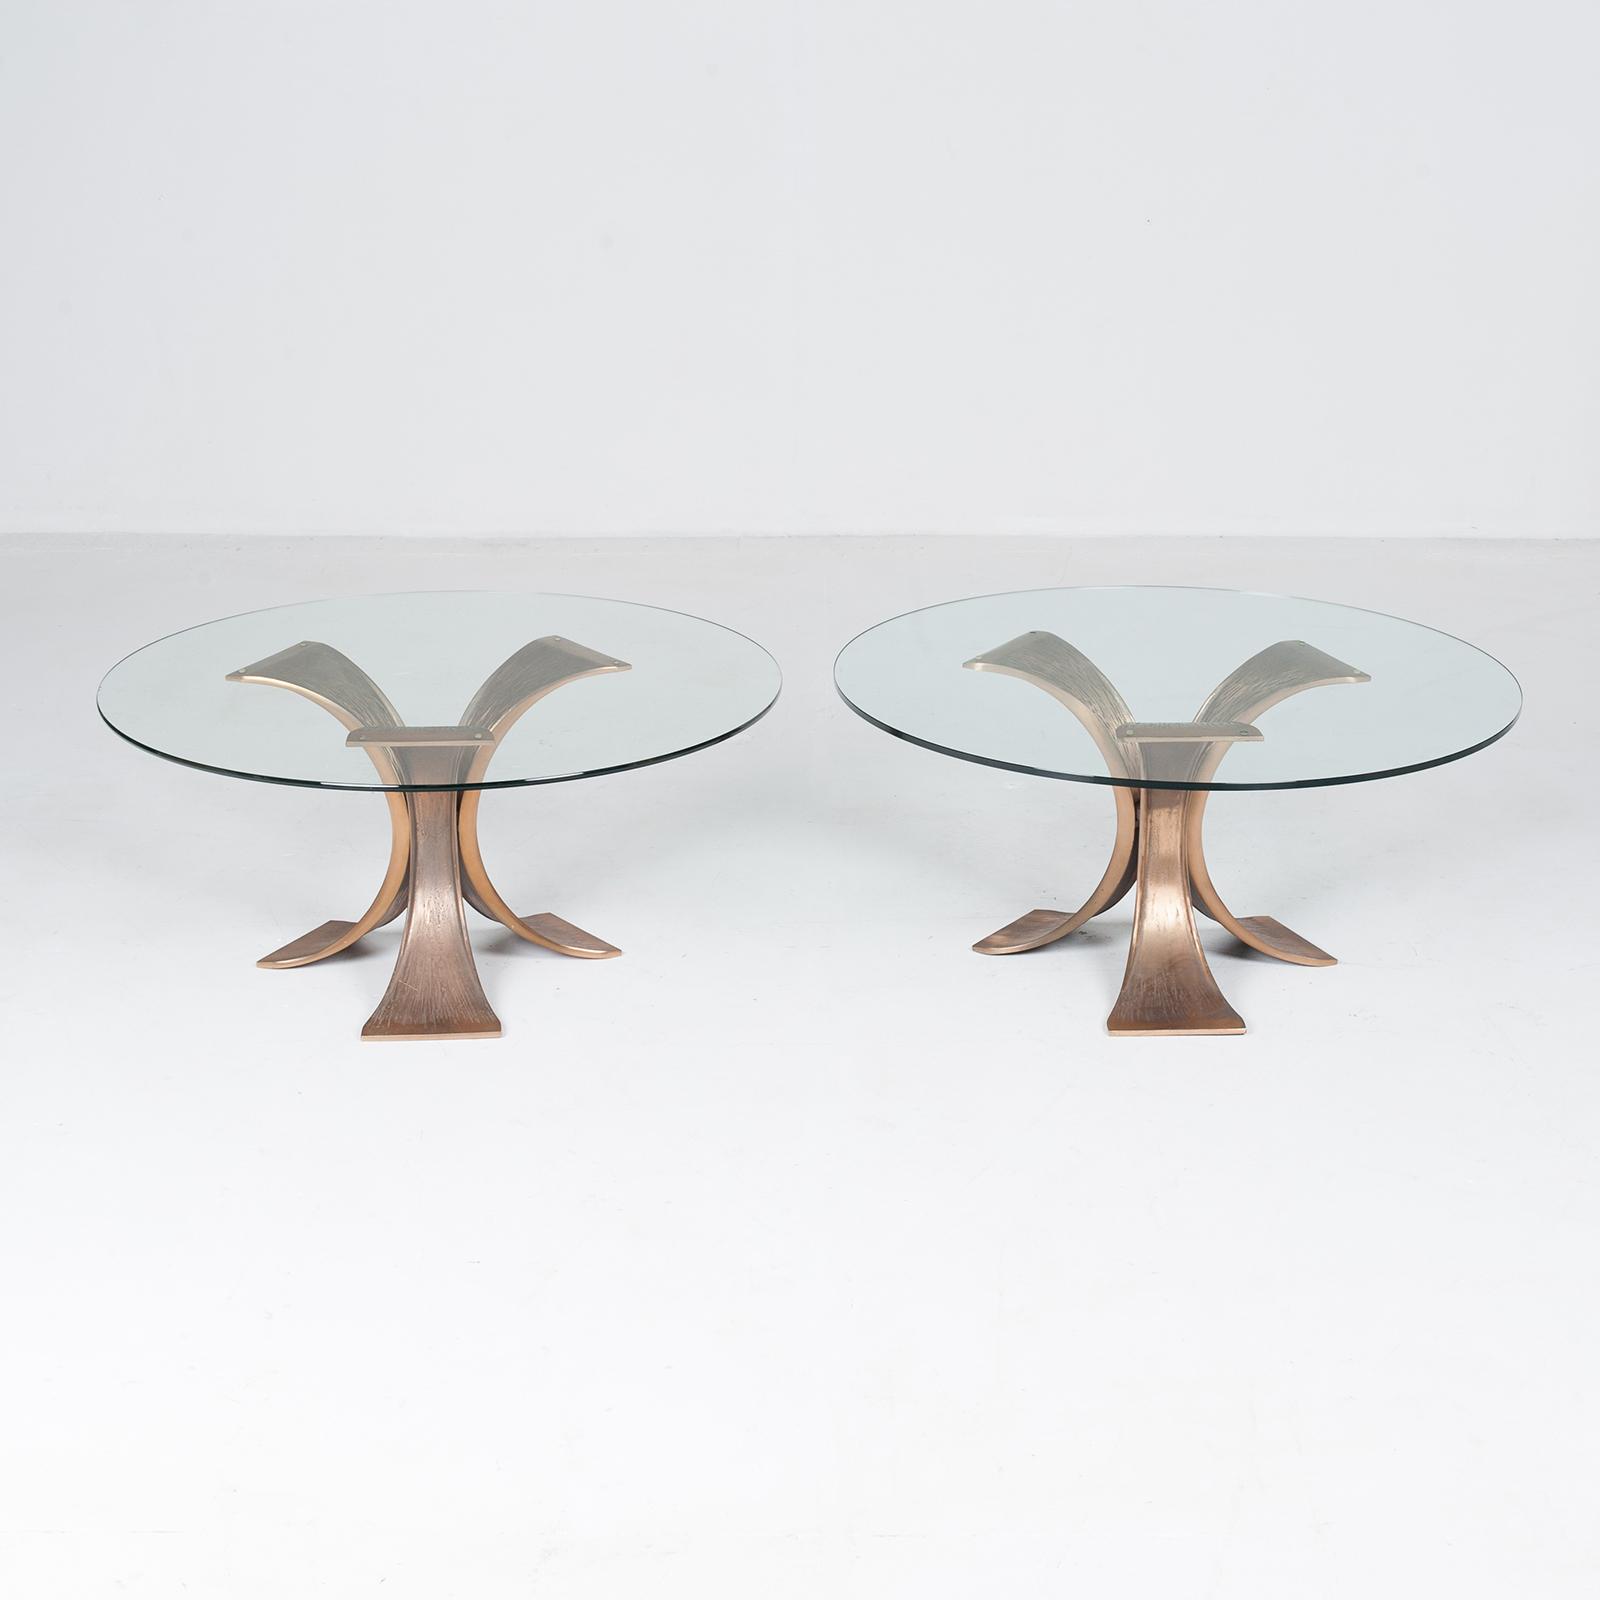 Brutalist Coffee Table In Bronze And Glass, 1970s, Belgium5